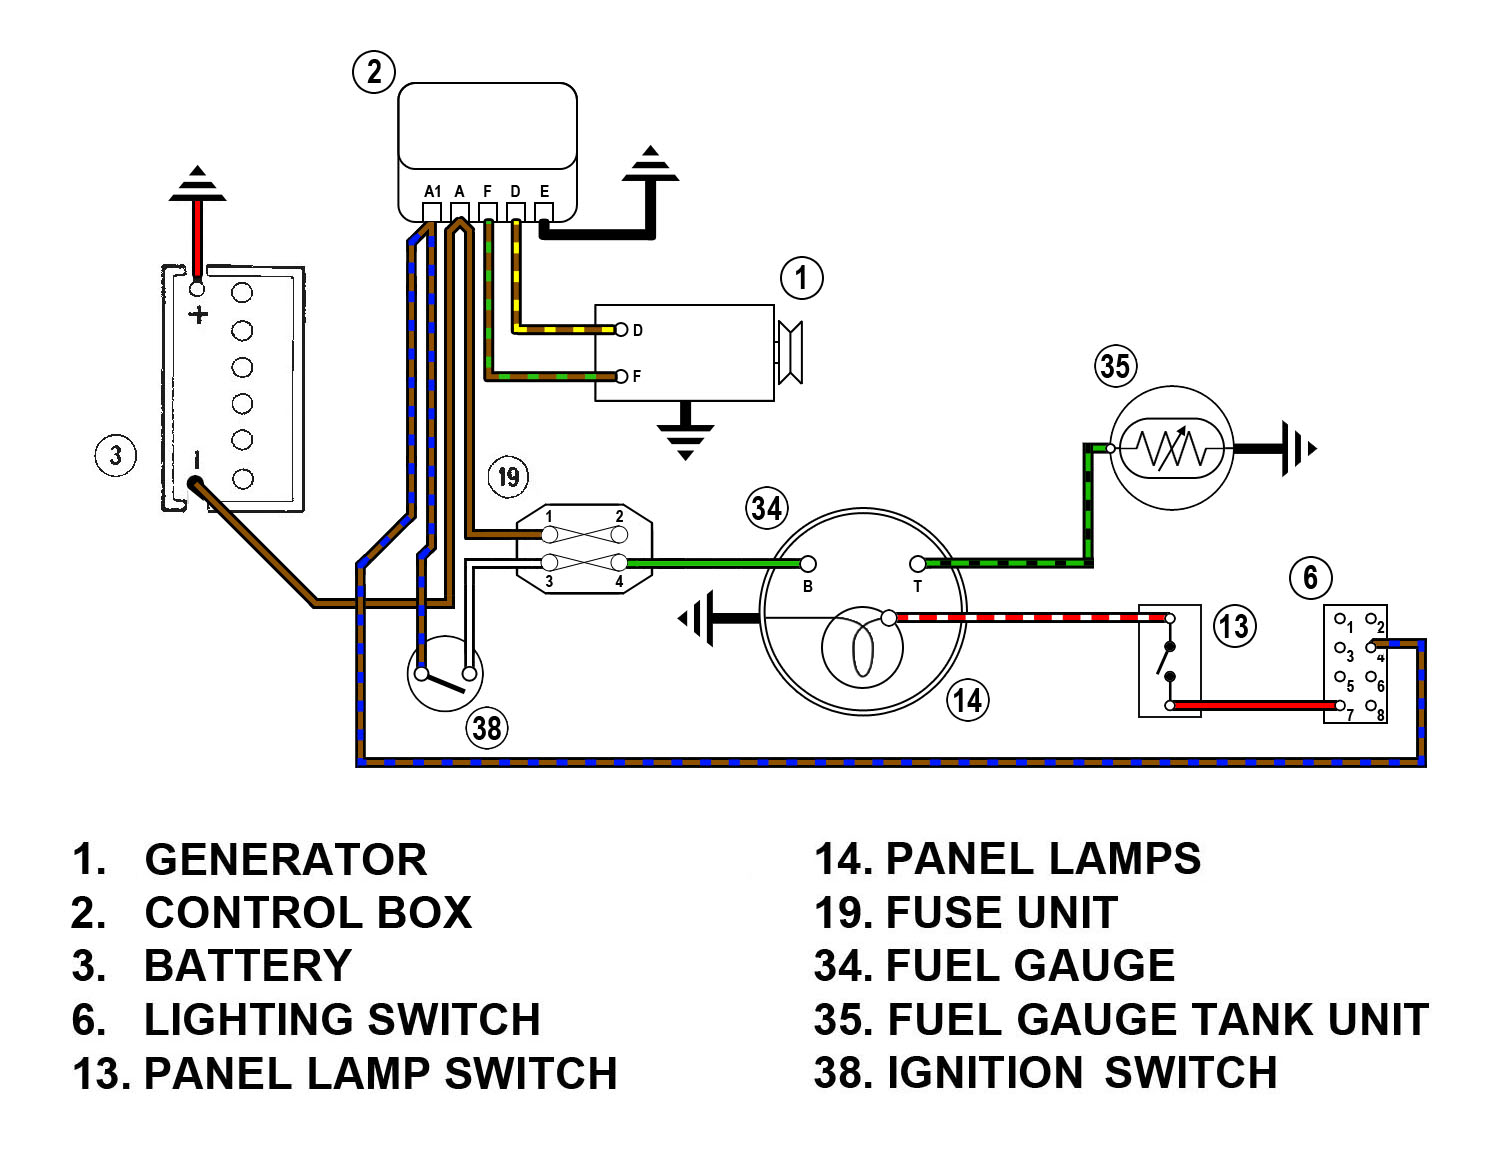 FuelGaugeWiringSpMkII_MGMkI gauge wiring diagram veethree gauges wiring diagrams \u2022 wiring sunpro gauges wiring diagram at reclaimingppi.co